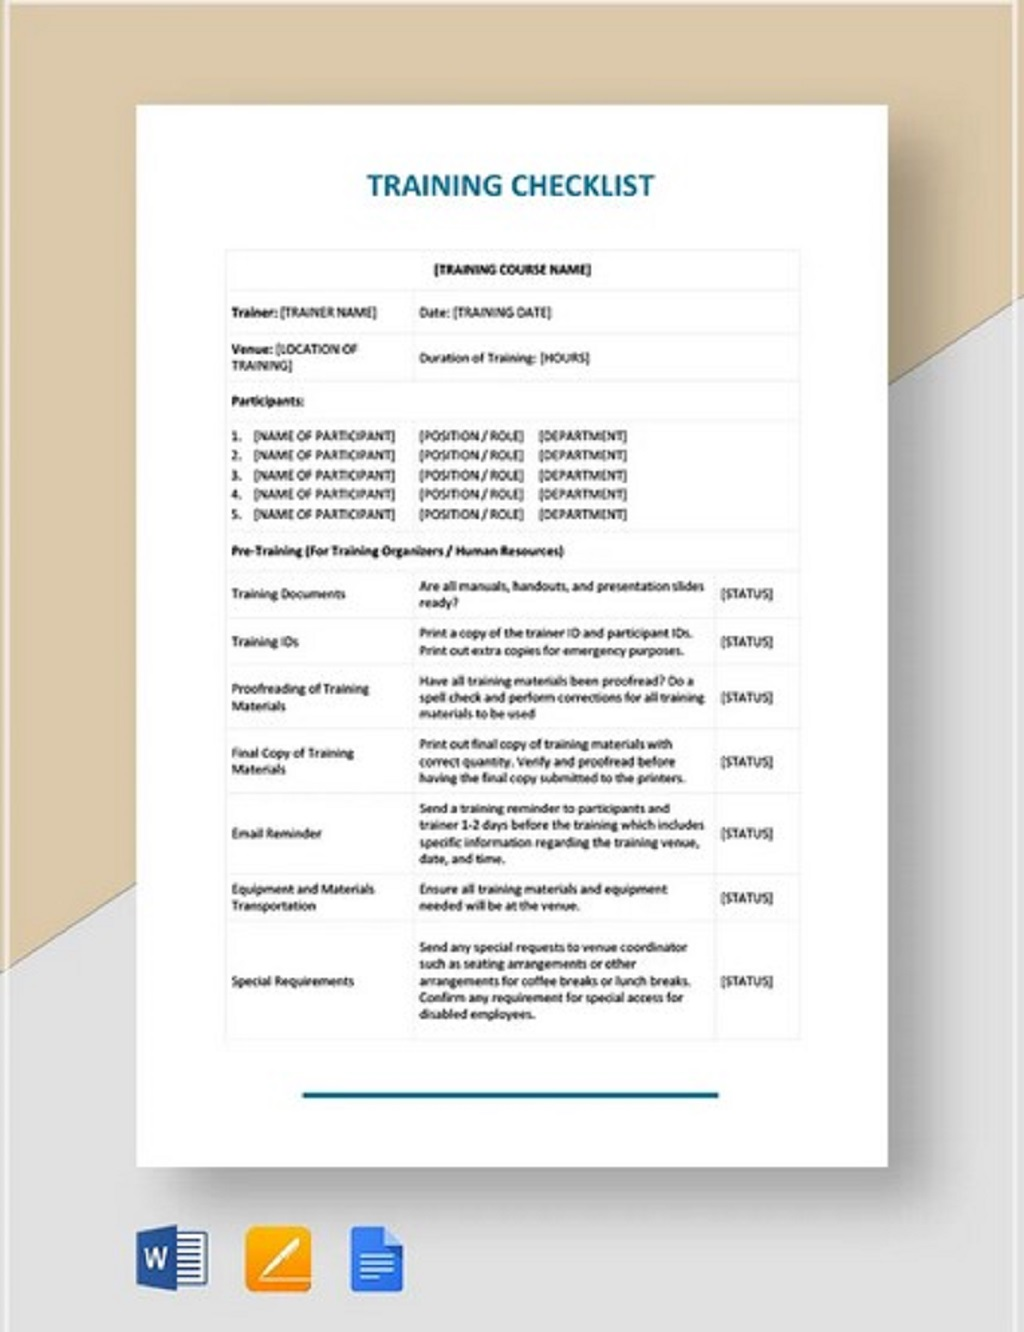 Printable Training Checklist Form Example Employee Word Pdf Template Google Docs  Samples Large